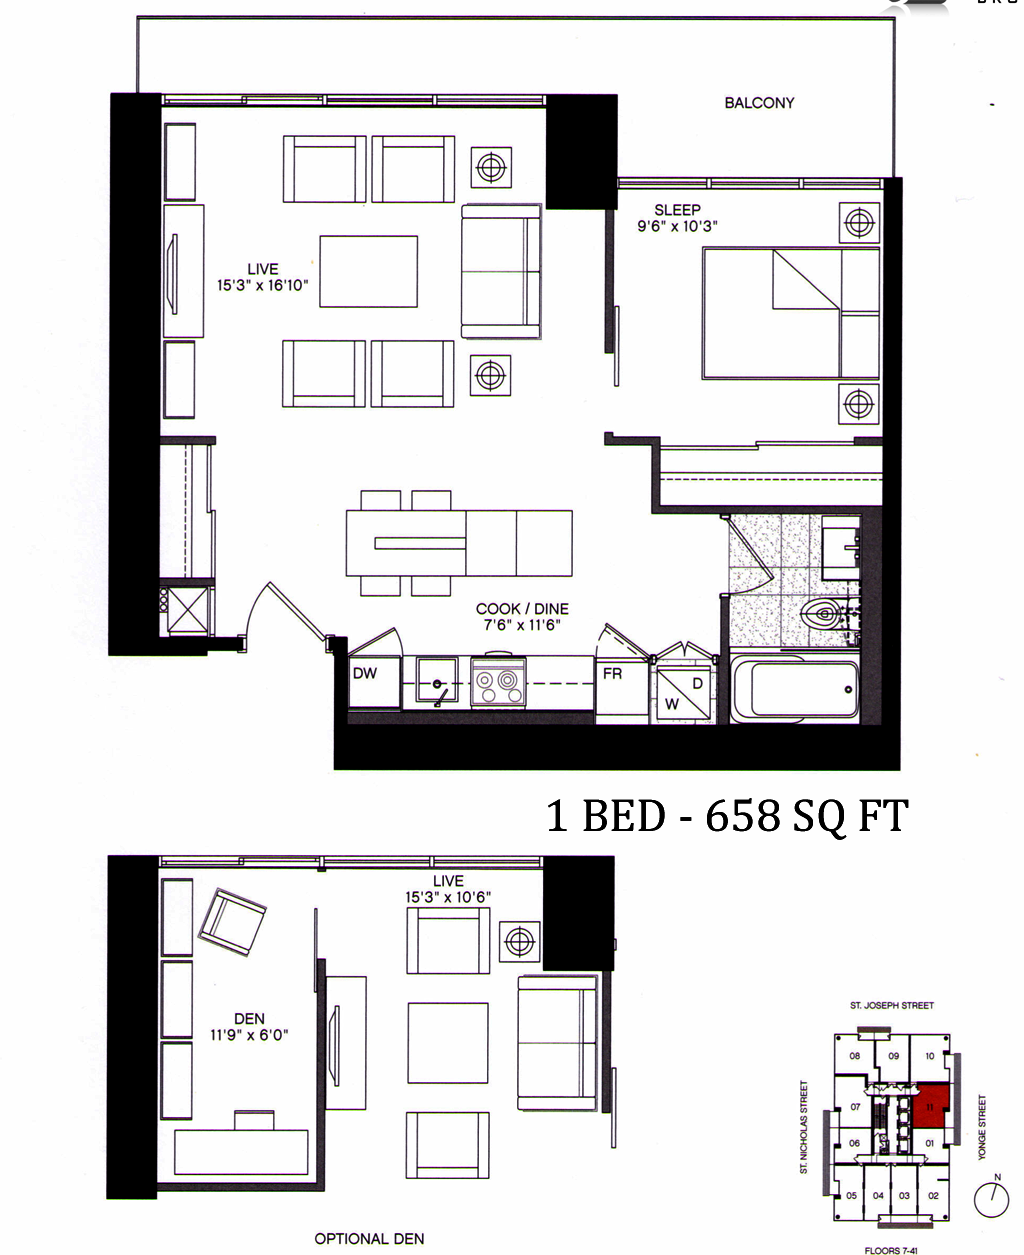 5 ST JOSEPH - FLOORPLAN 658 SQ FT - CONTACT YOSS KAPLAN